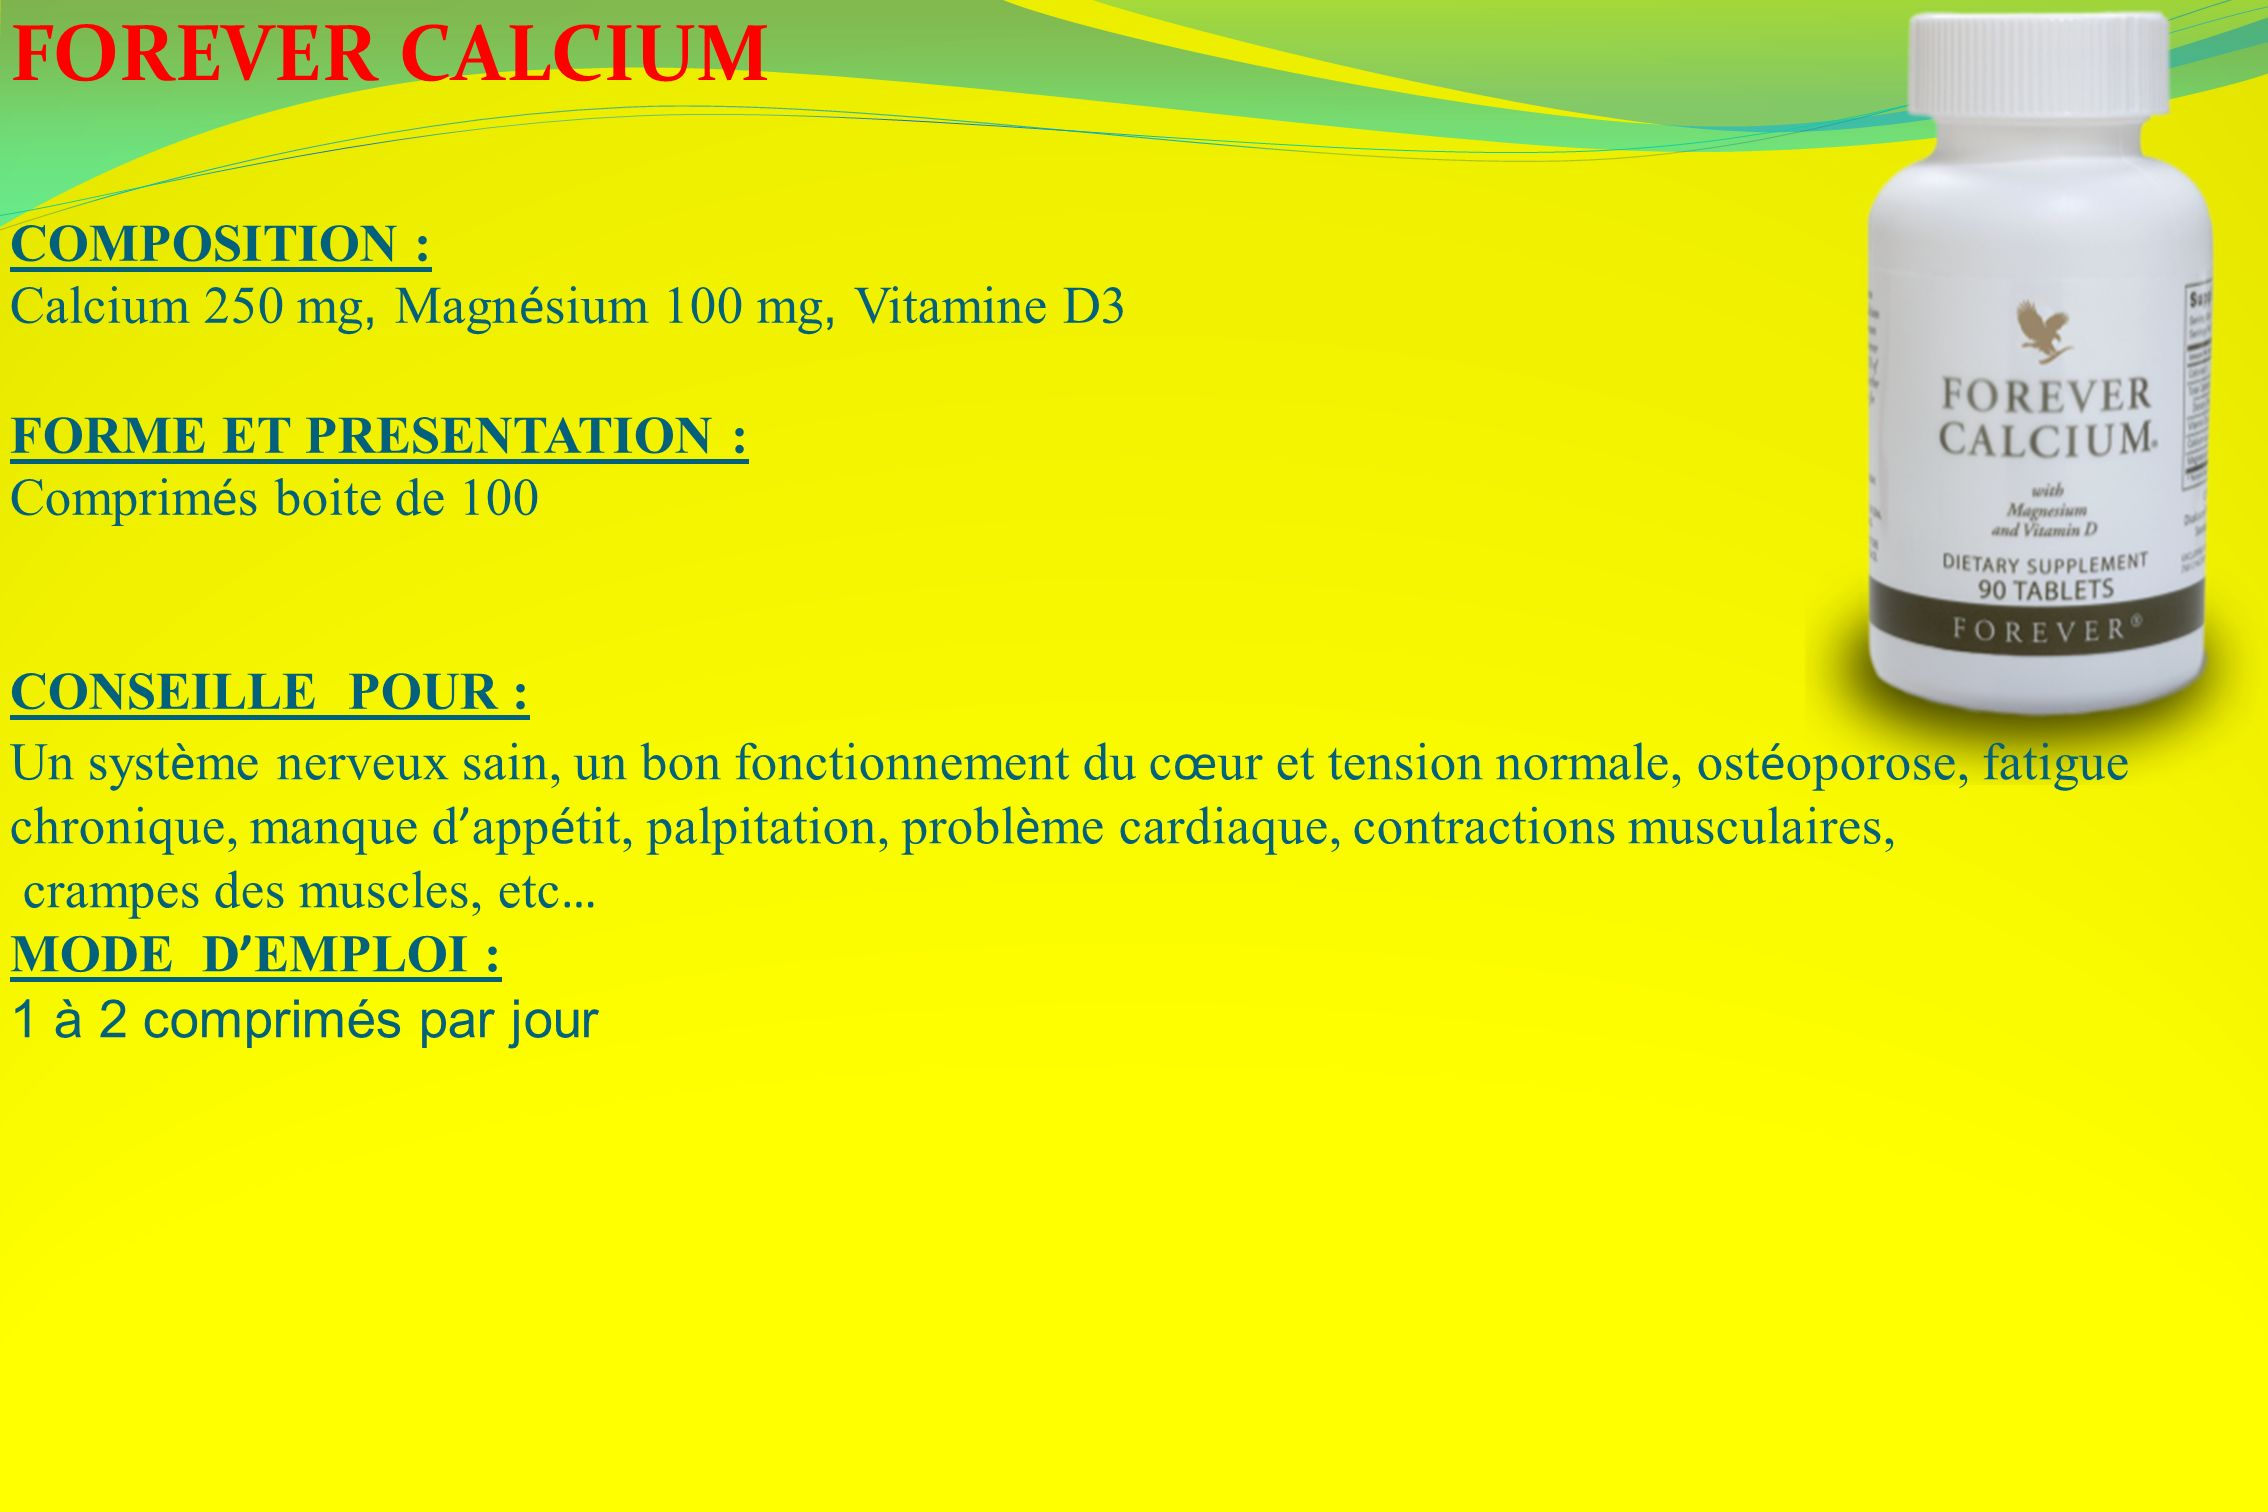 FOREVER CALCIUM COMPOSITION :